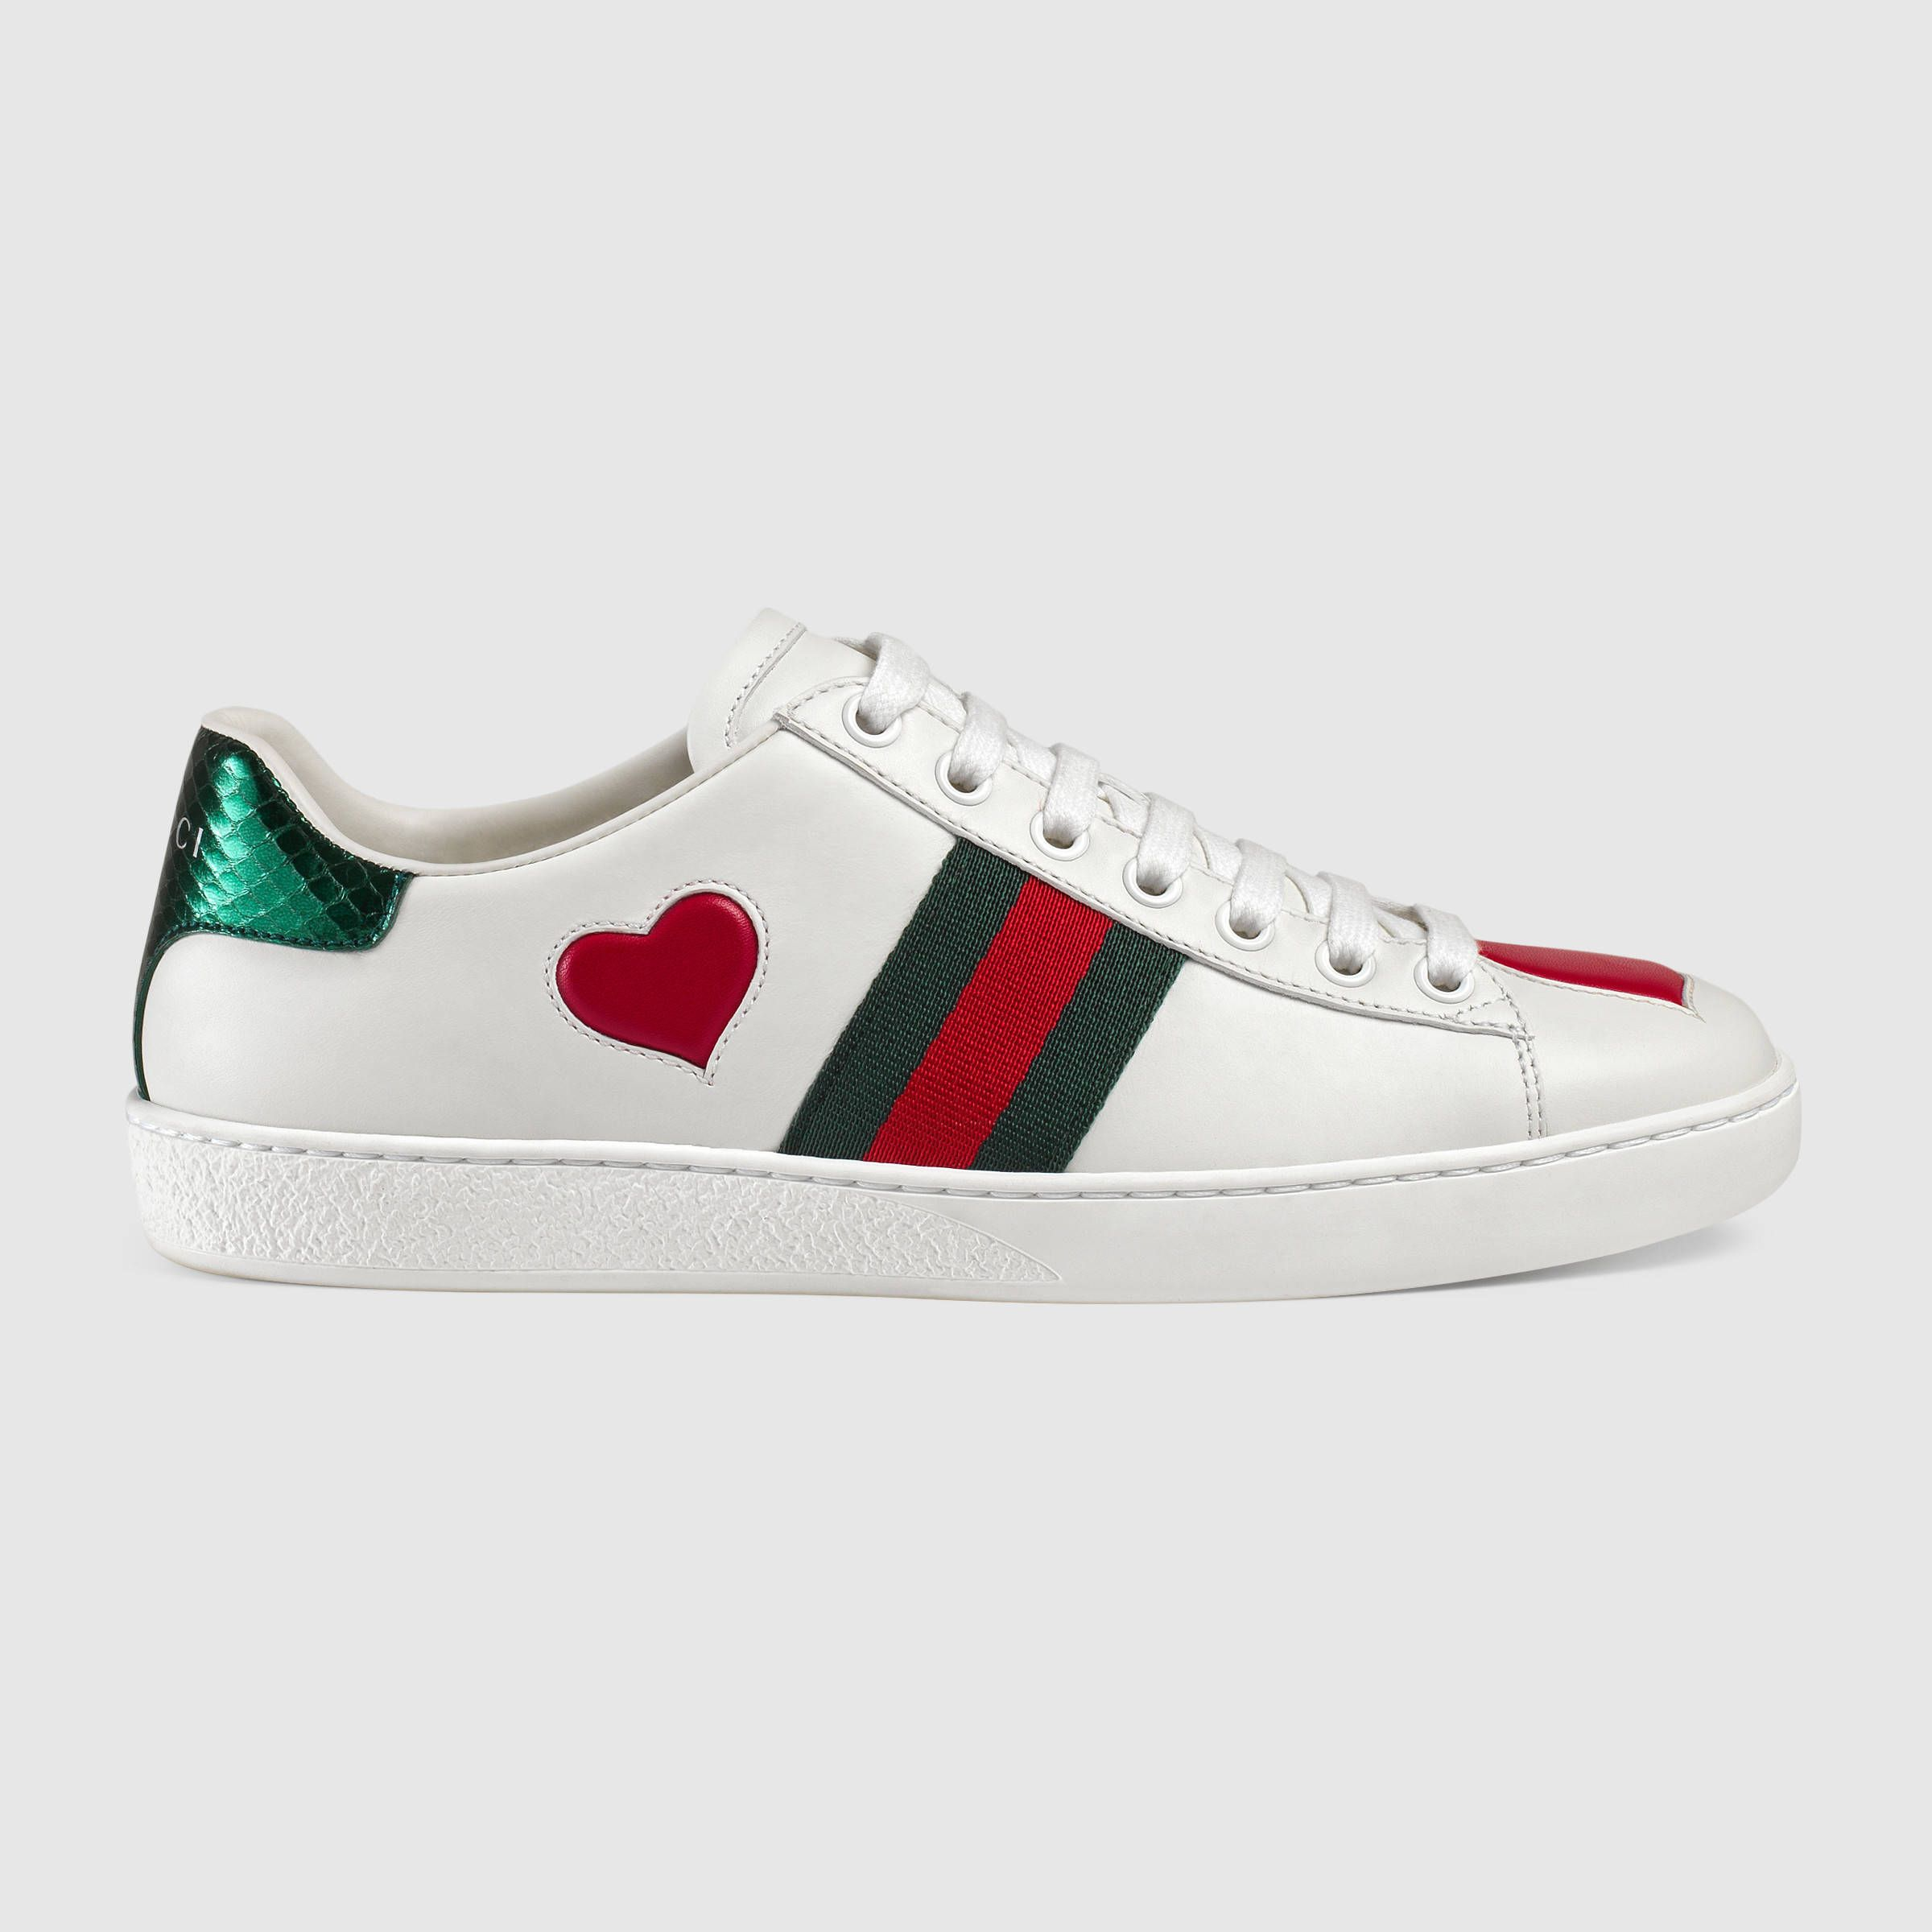 Gucci X Adidas. Gucci X Adidas NMD Bee White Lenaleestore